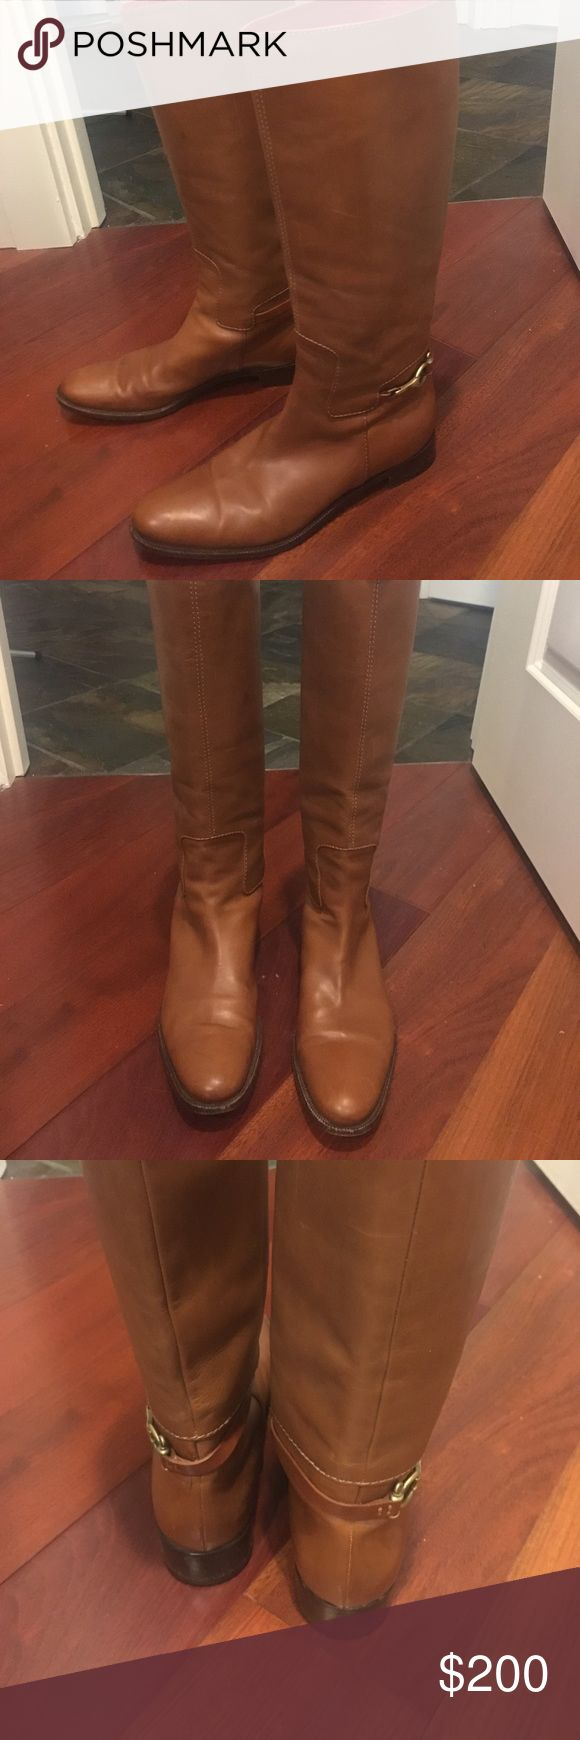 Burberry Riding Boots These beautiful sable riding boots with their gold buckles are a wonderfully elegant finish to any ensemble. The boots have a little wear and tear, including a few water stains, as reflected in the images and price. Perhaps a shoe cobbler can bring them back to the height of their glory? Perhaps you like a bit of character in your boots? Please note that Burberry tends to run a bit small. Burberry Shoes